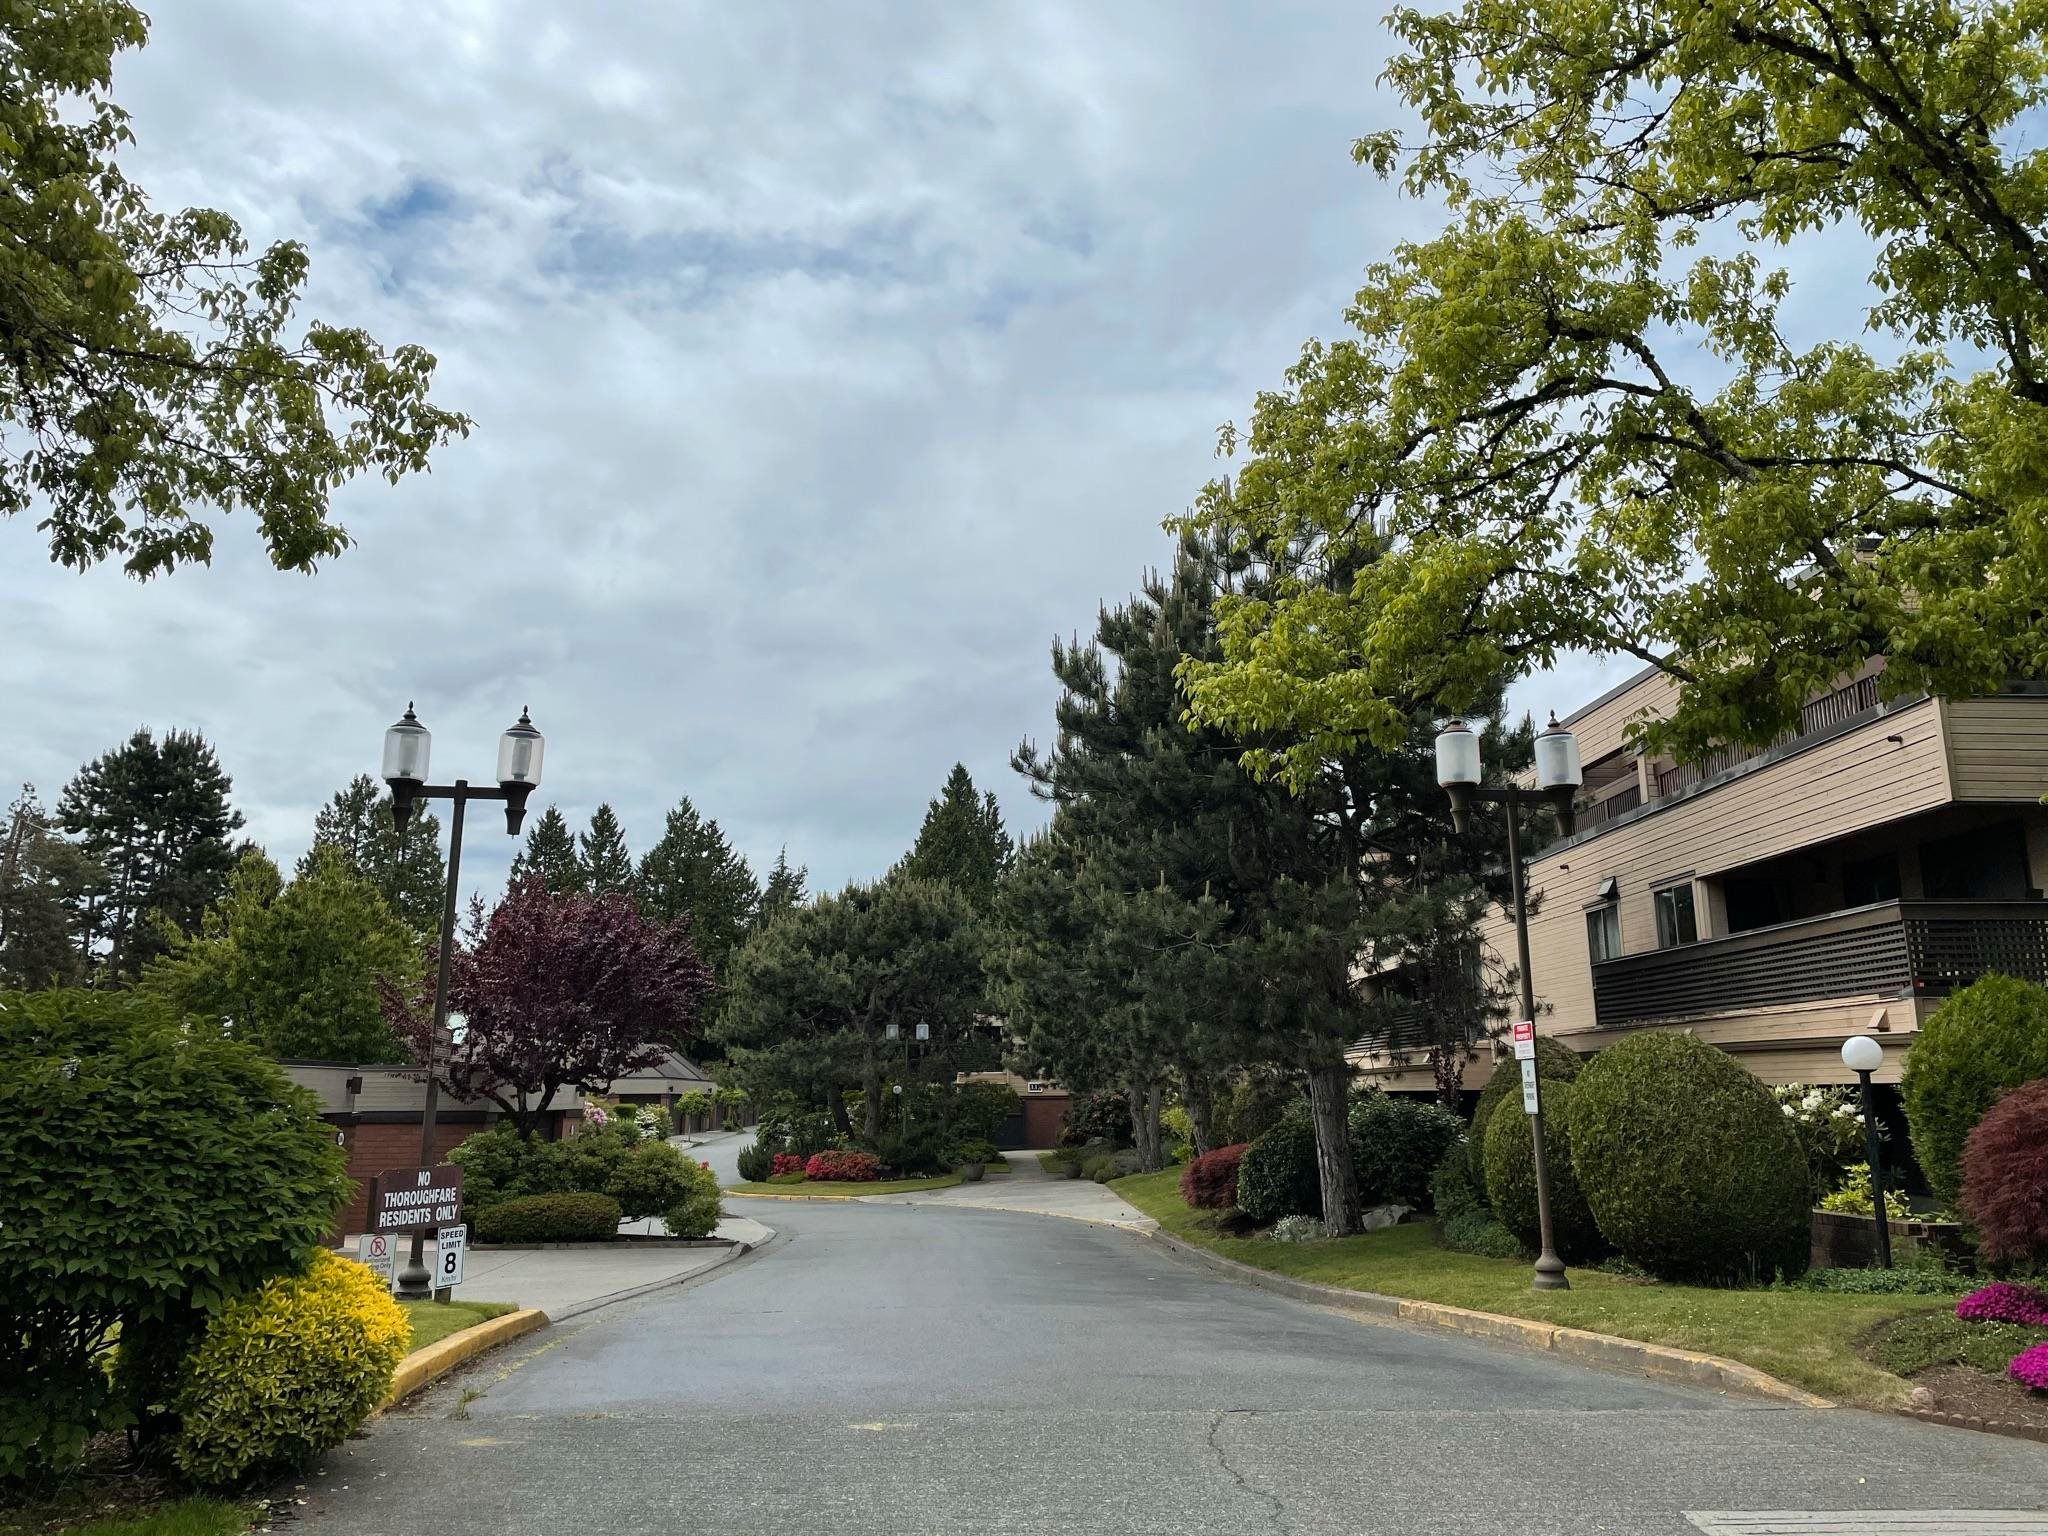 """Main Photo: 409 333 WETHERSFIELD Drive in Vancouver: South Cambie Condo for sale in """"LANGARA COURT"""" (Vancouver West)  : MLS®# R2613843"""